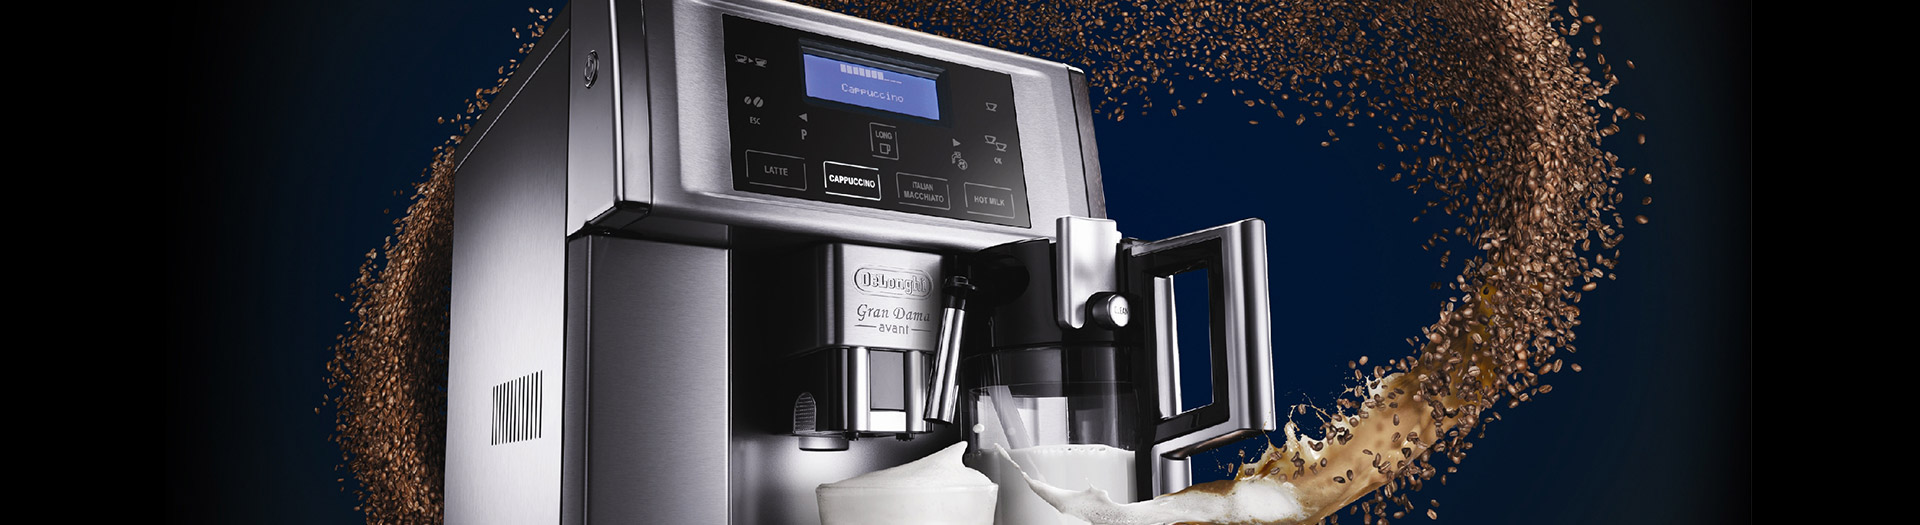 Delonghi-products